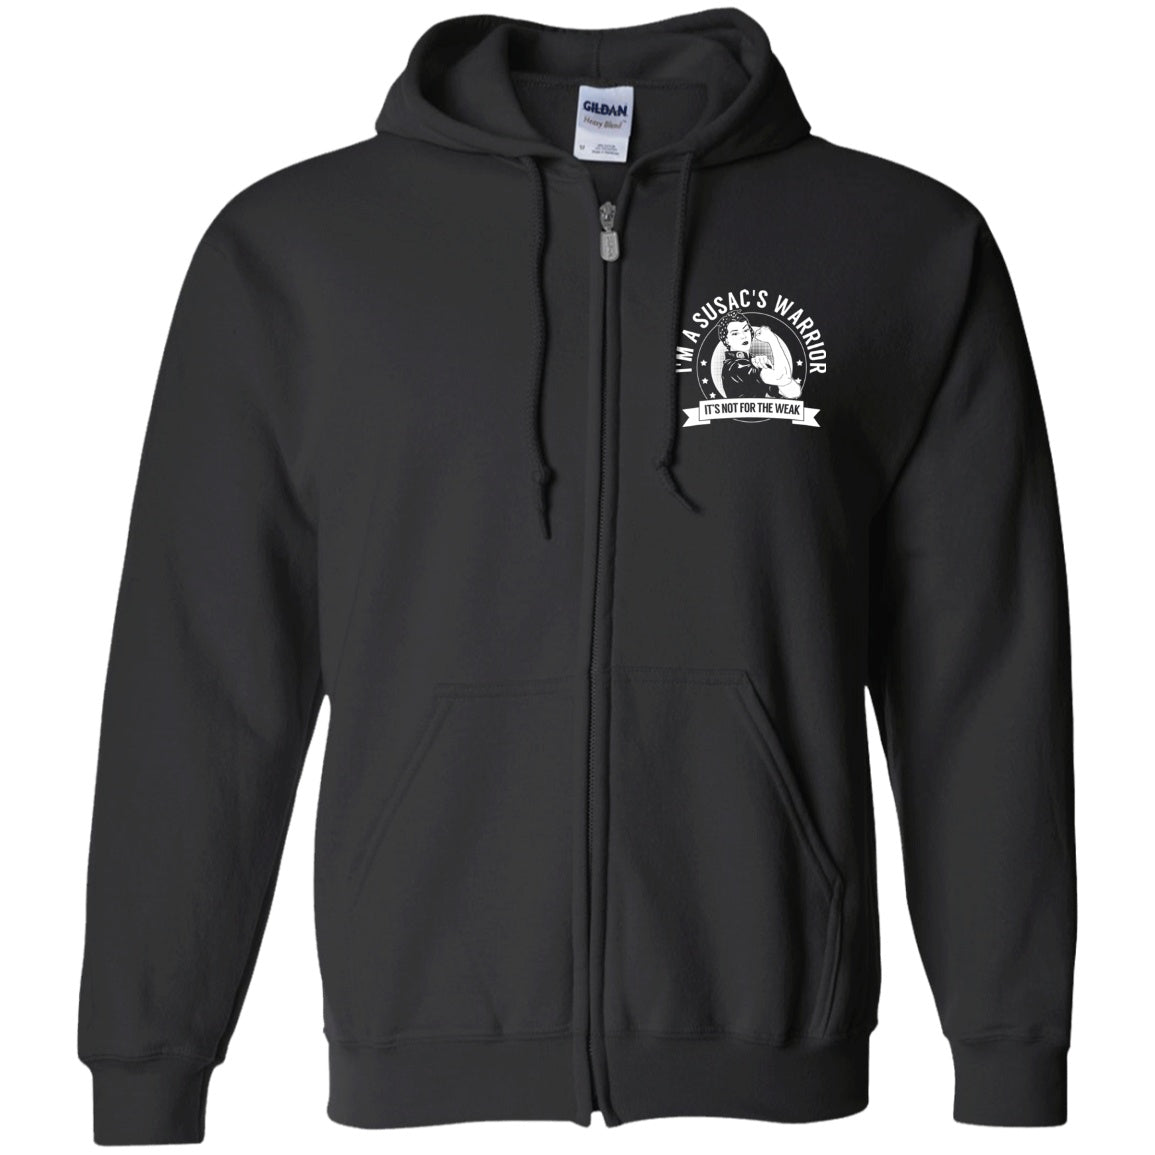 Sweatshirts - Susac's Warrior NFTW Zip Up Hooded Sweatshirt